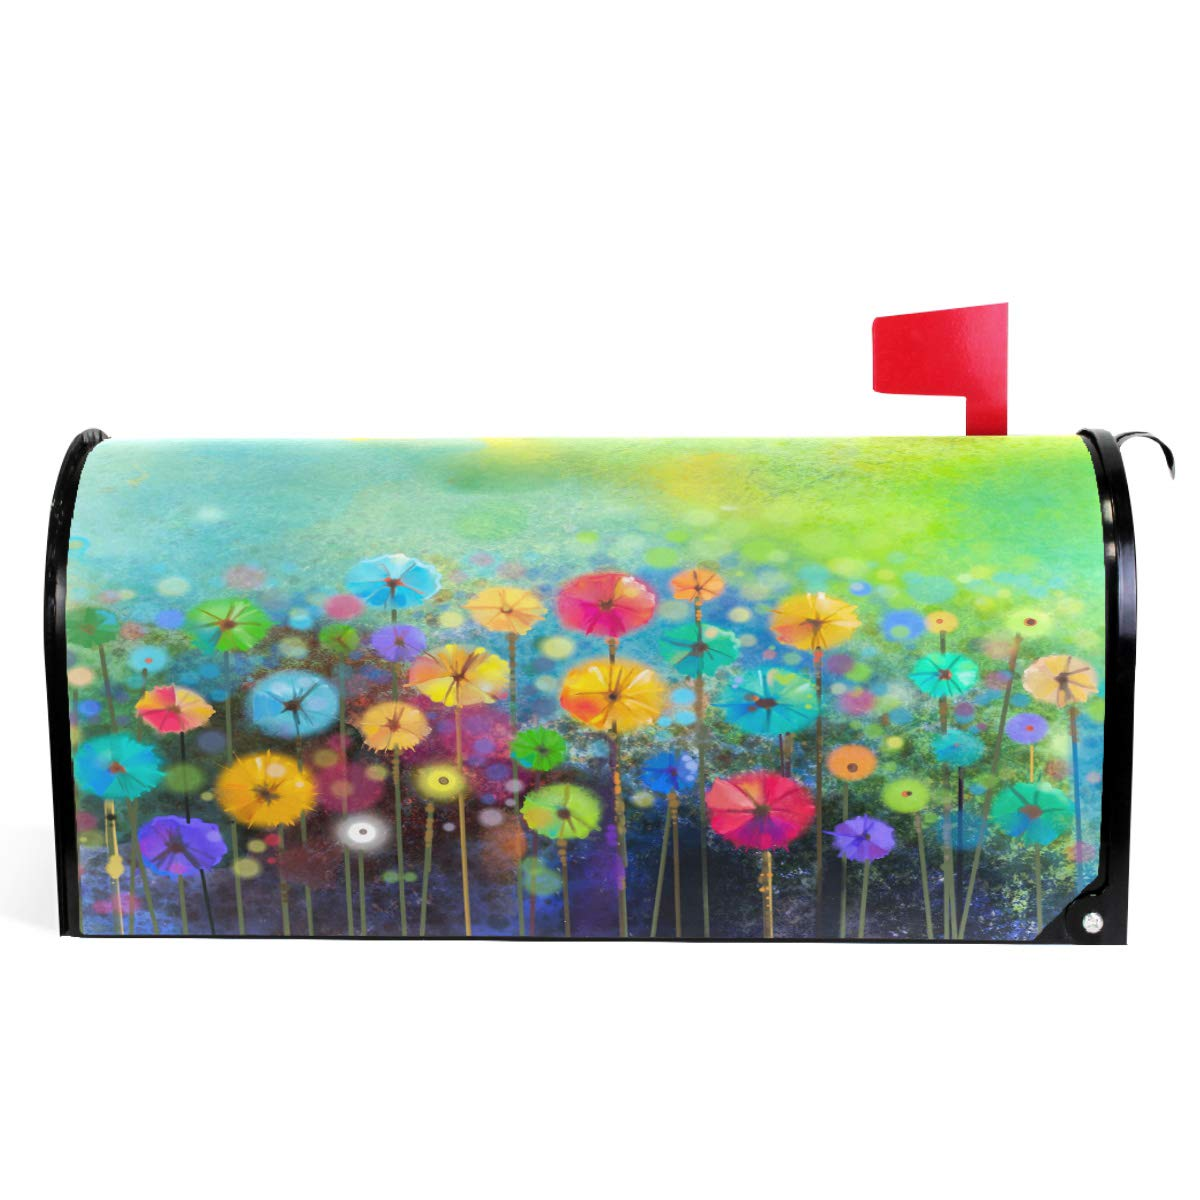 Seasonal Nature Spring Summer Autumn Winter Flowers Mailbox Covers Large Abstract Floral Watercolor Rainbow Dandelion Poppy Magnetic Mail Wraps Cover Letter Post Box Oversized 25.5'' L X 21'' W